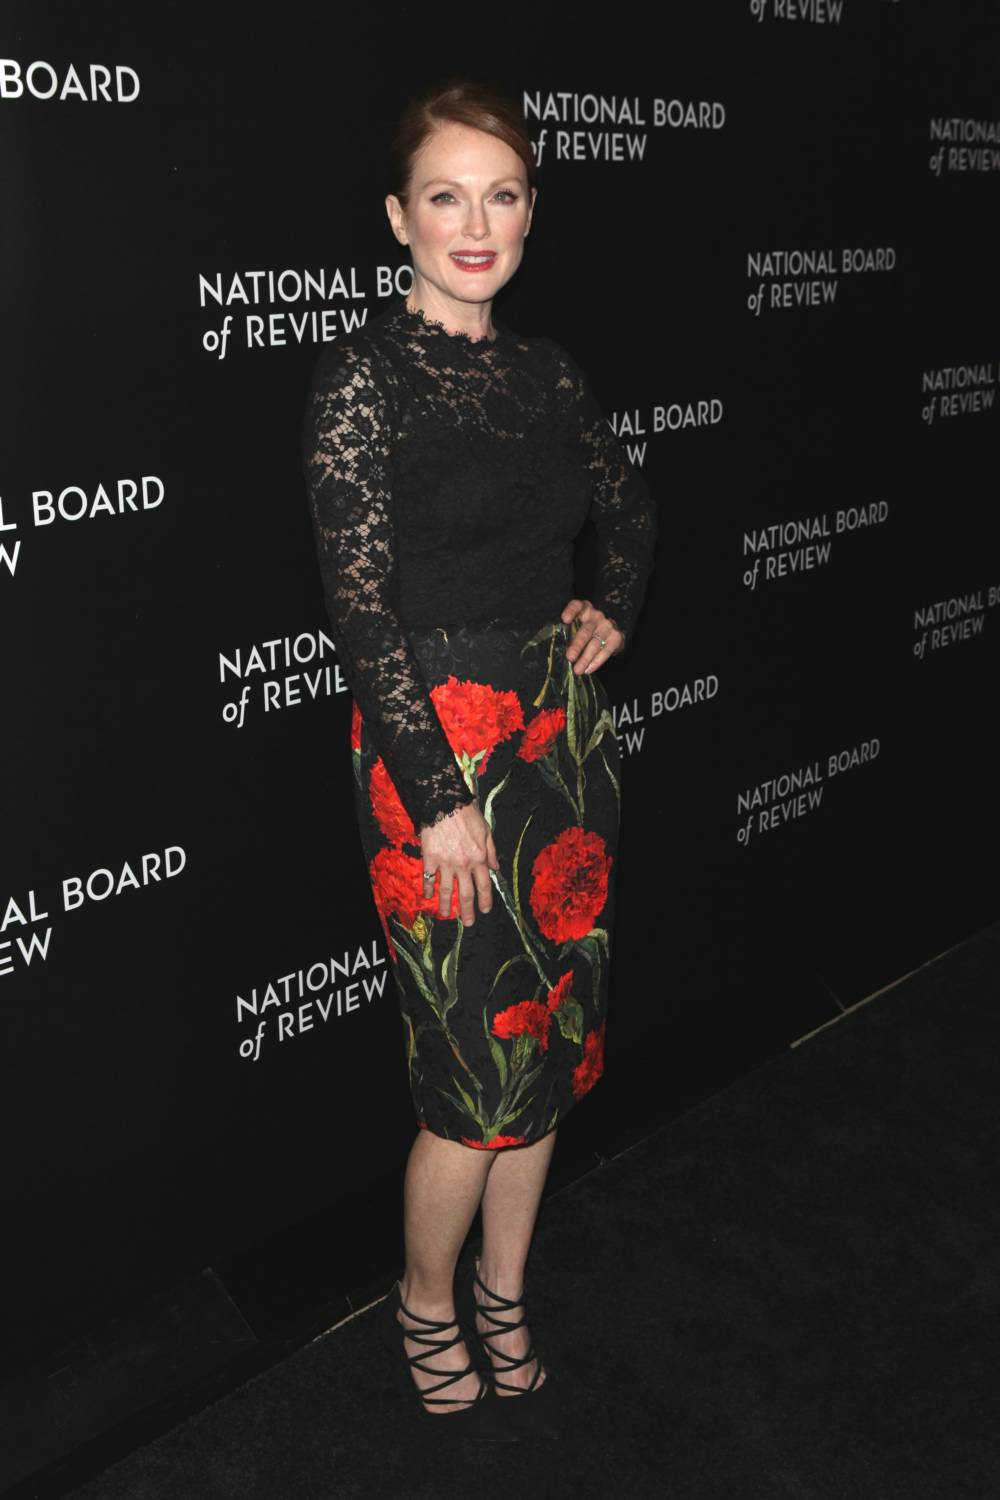 julianne-moore-dolce-gabbana-2014-national-board-review-gala/